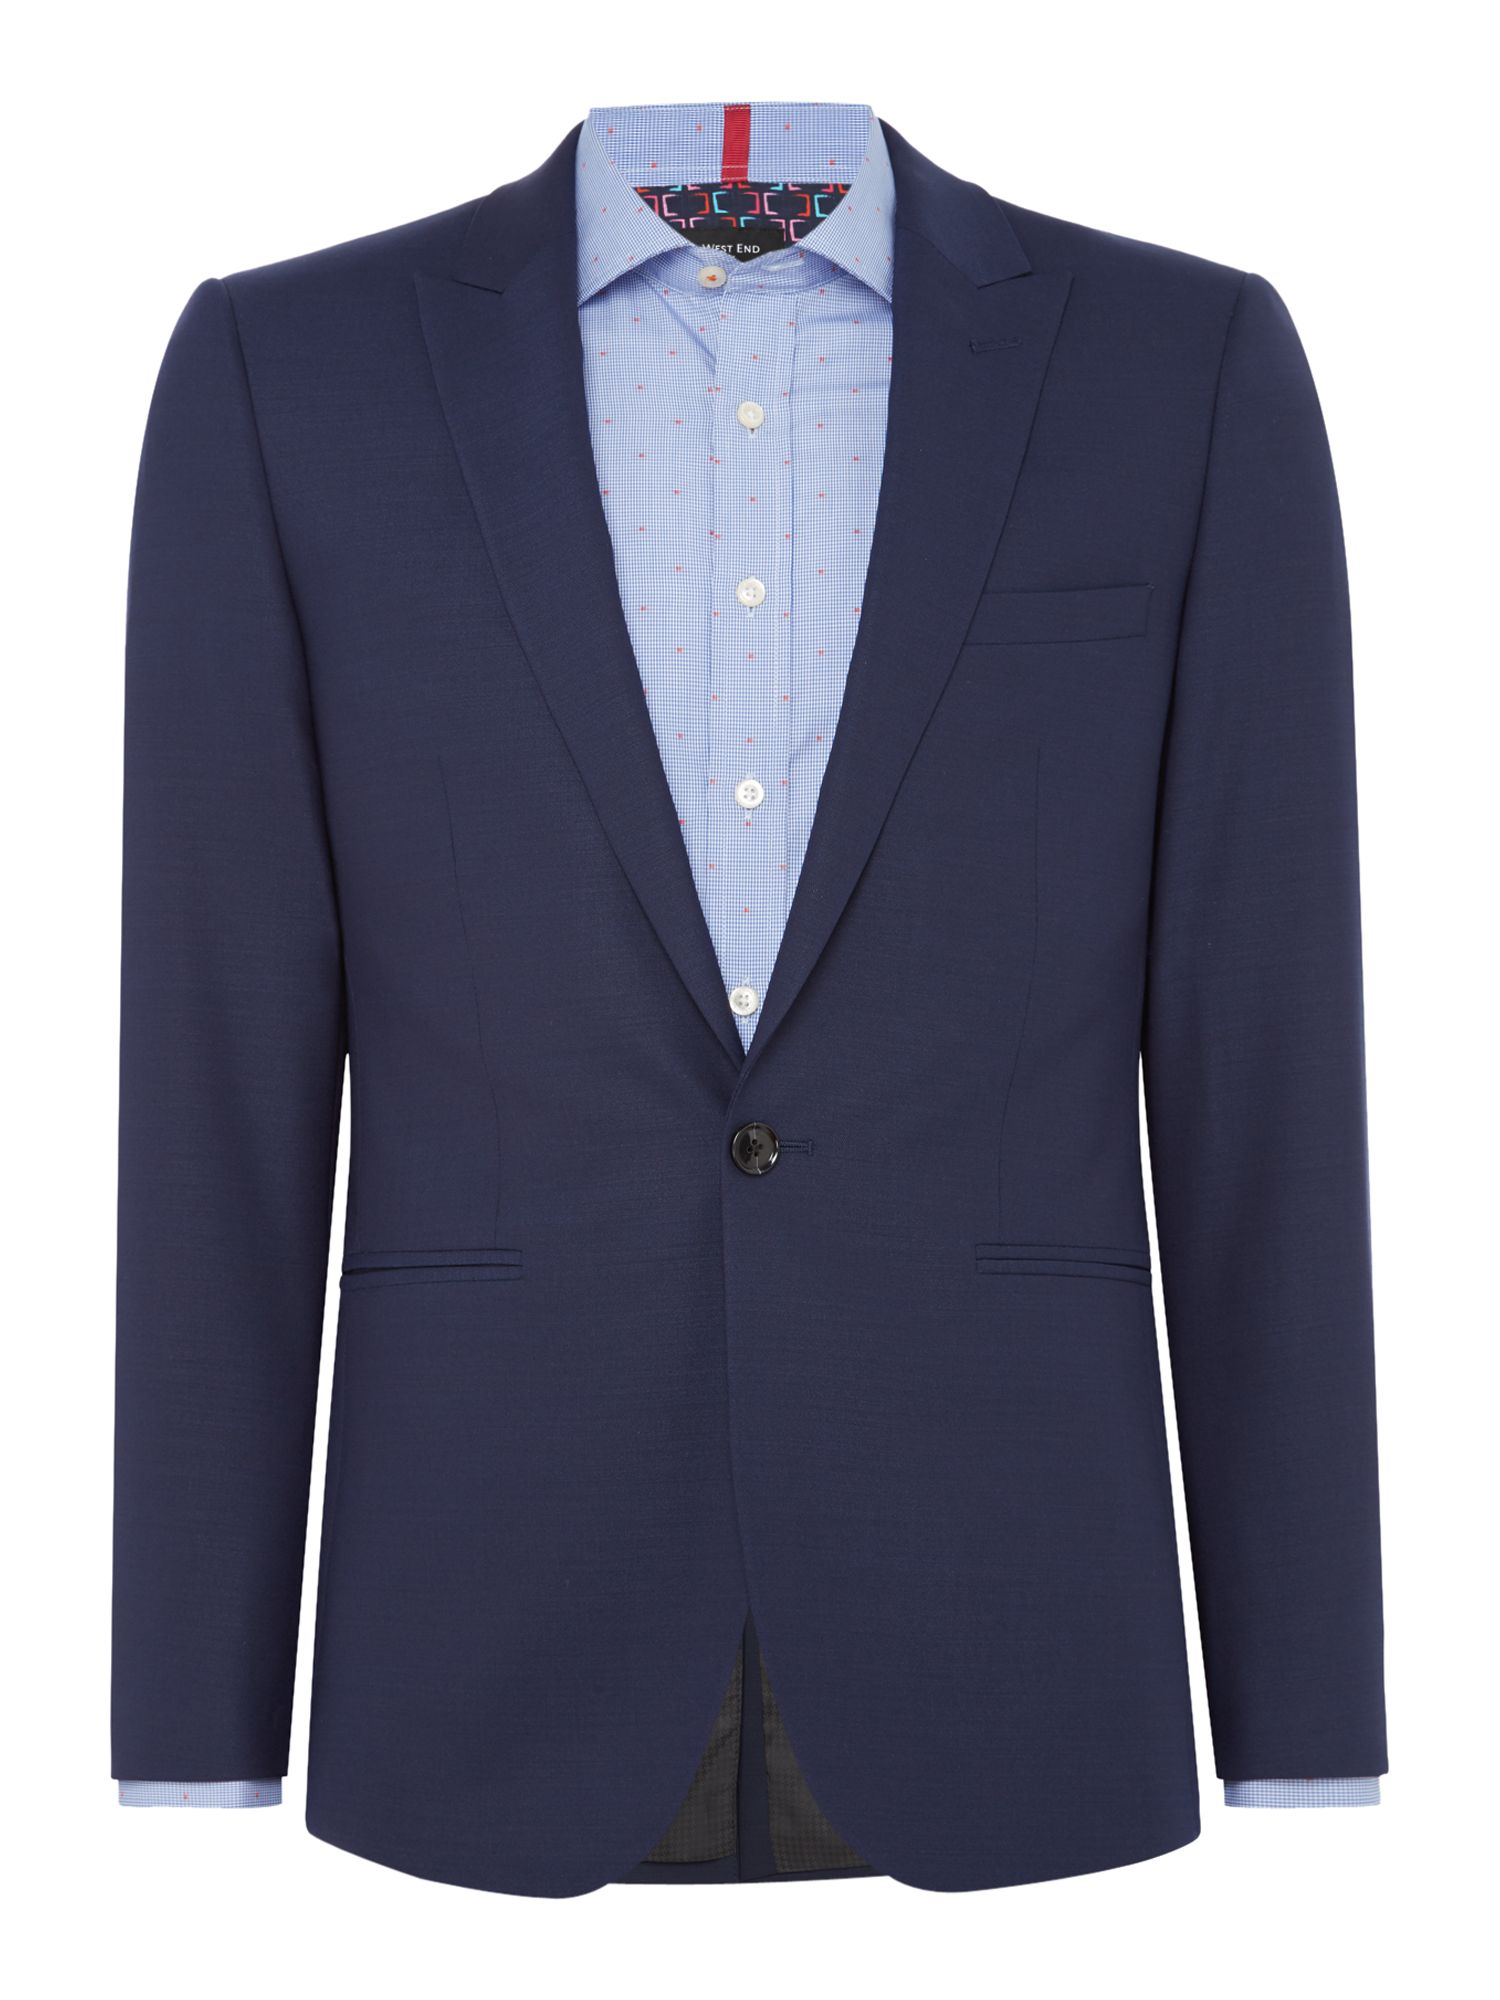 Men's Simon Carter Pindot Suit, Navy